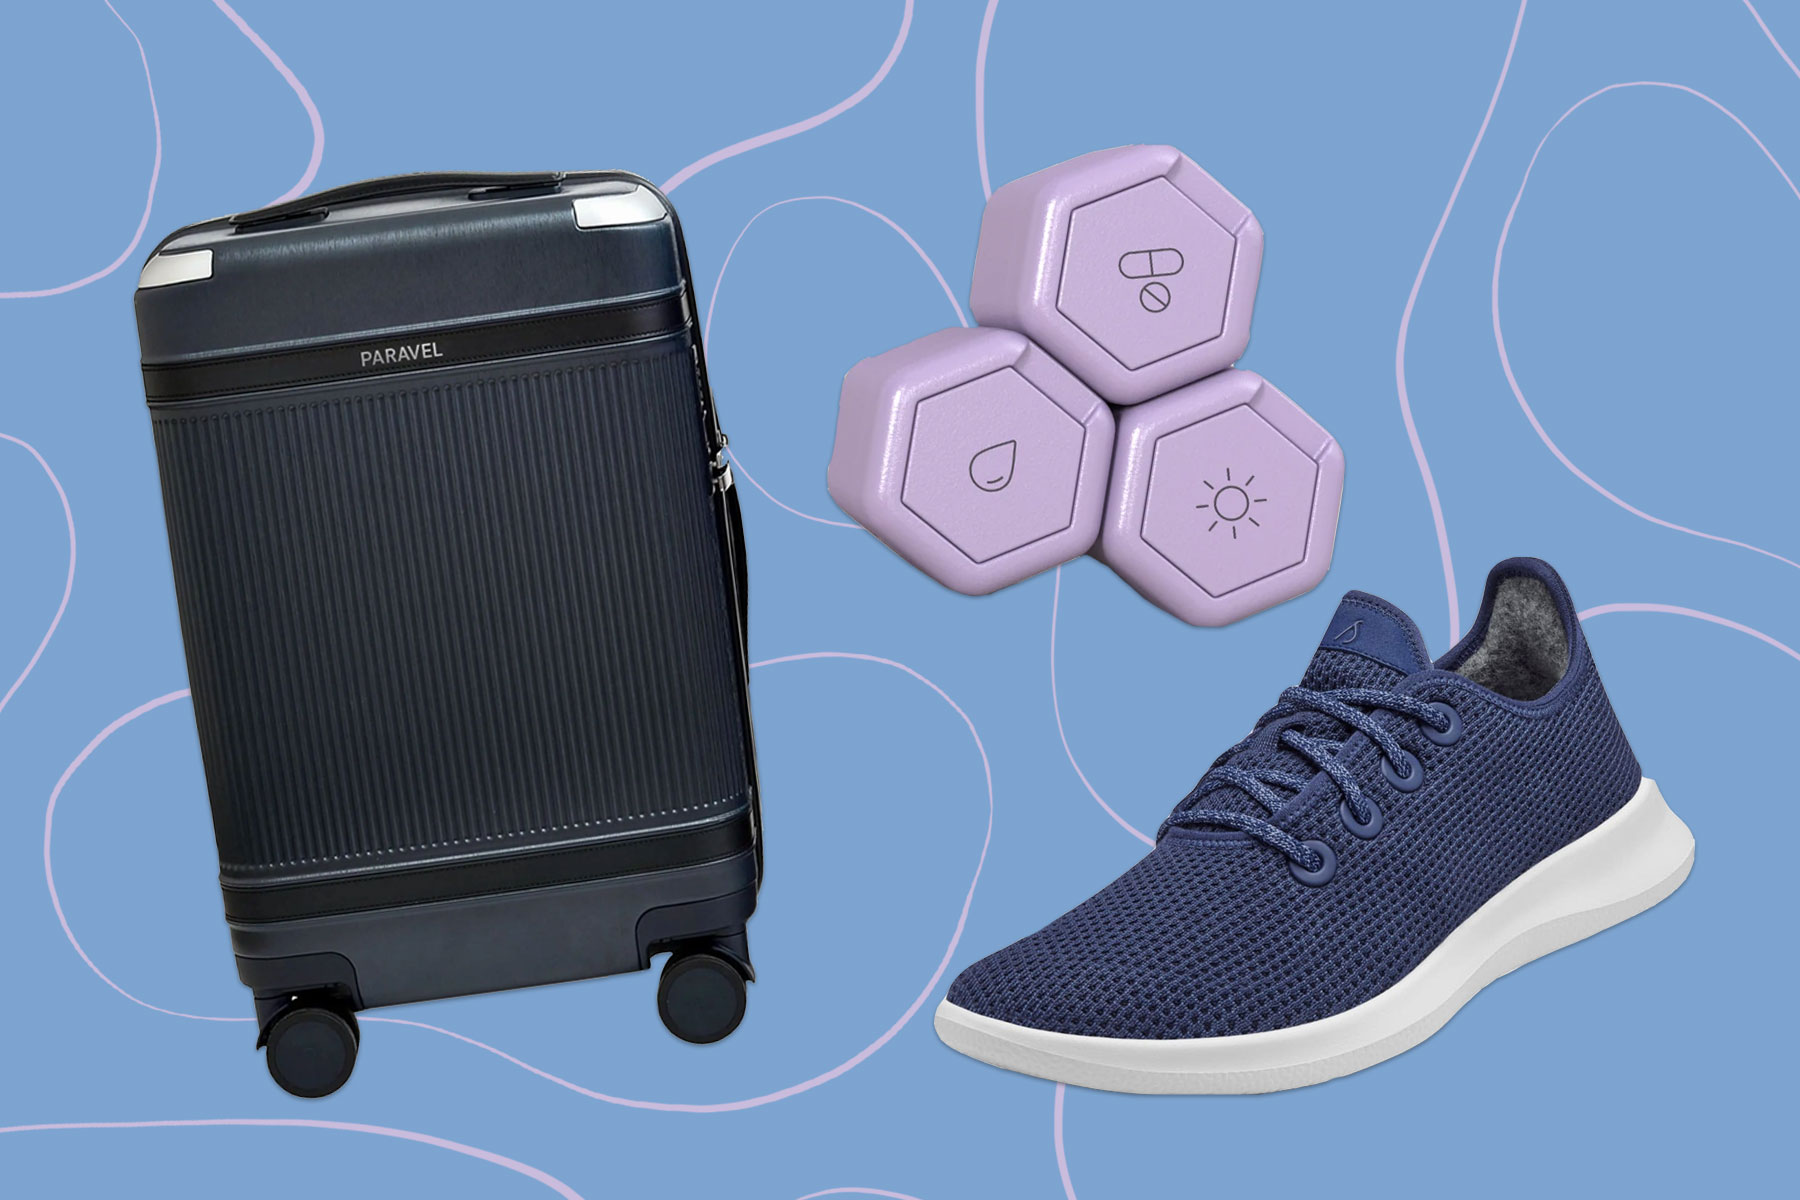 Allbirds navy sneakers, purple toiletry containers, navy suitcase